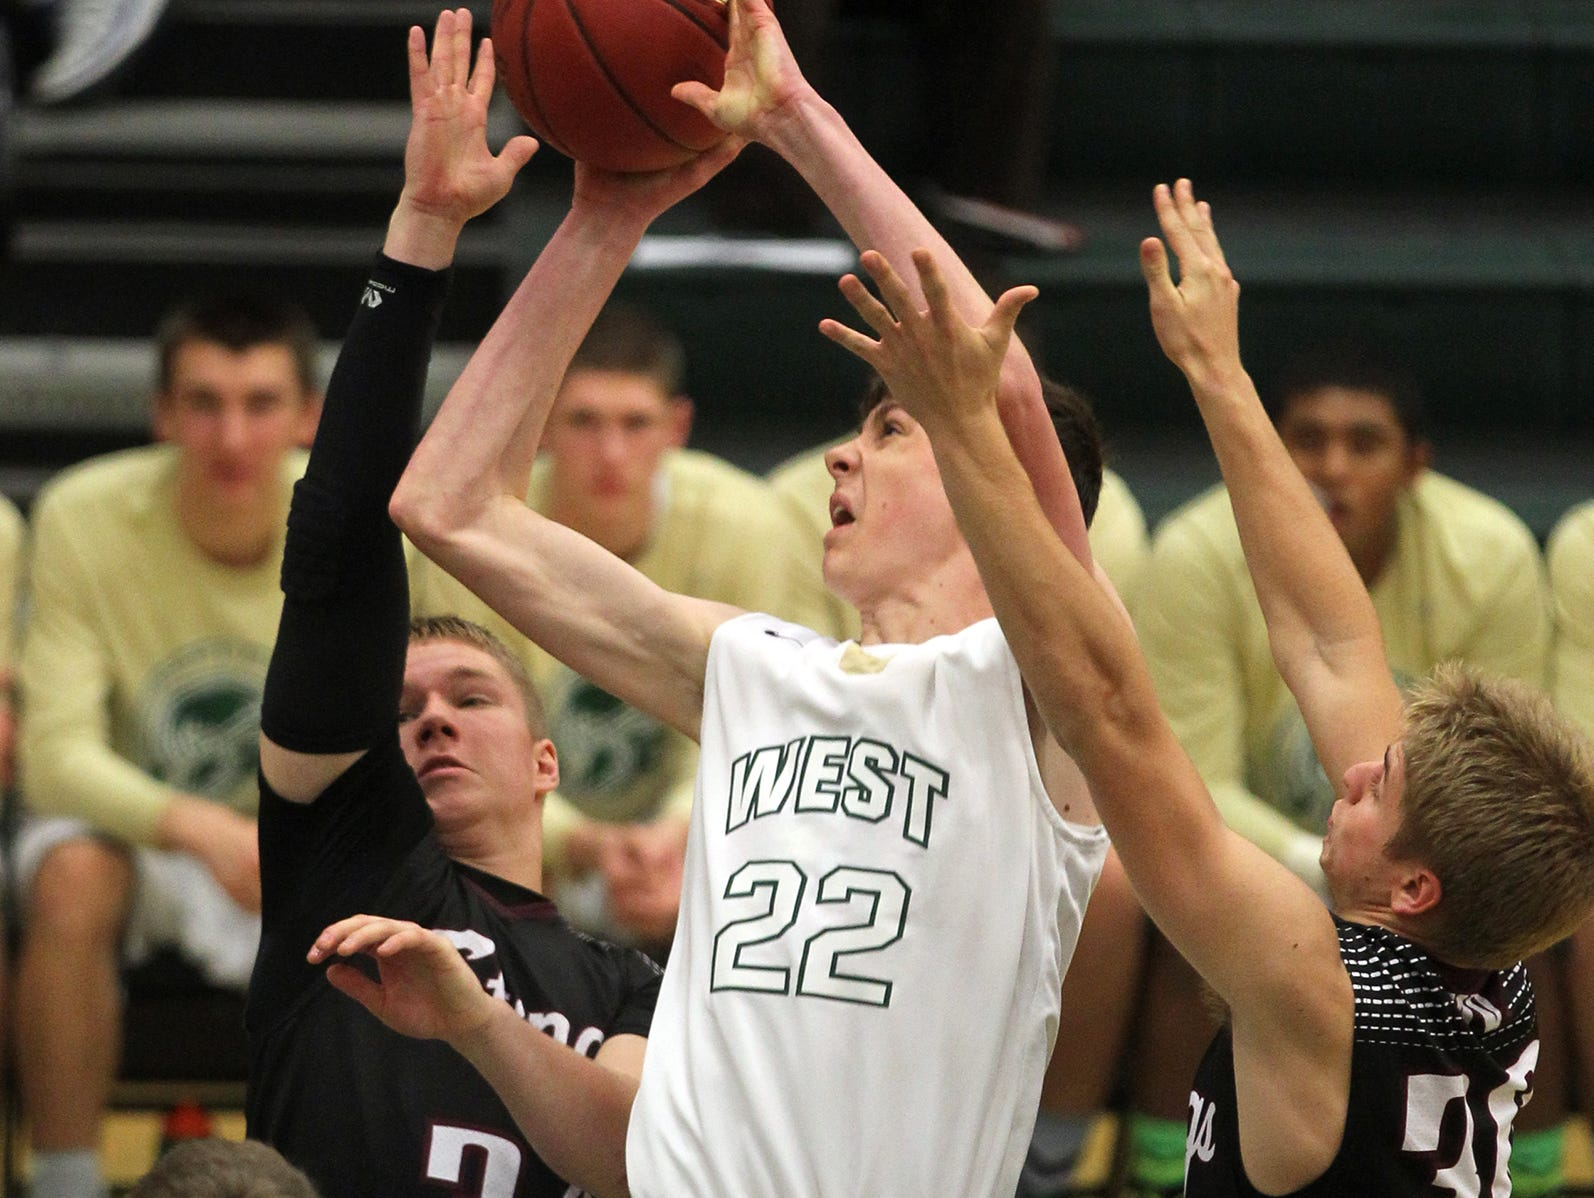 West High's Patrick McCaffery draws a foul as he takes a shot during the Trojans' game against Mount Vernon on Thursday, Dec. 3, 2015.